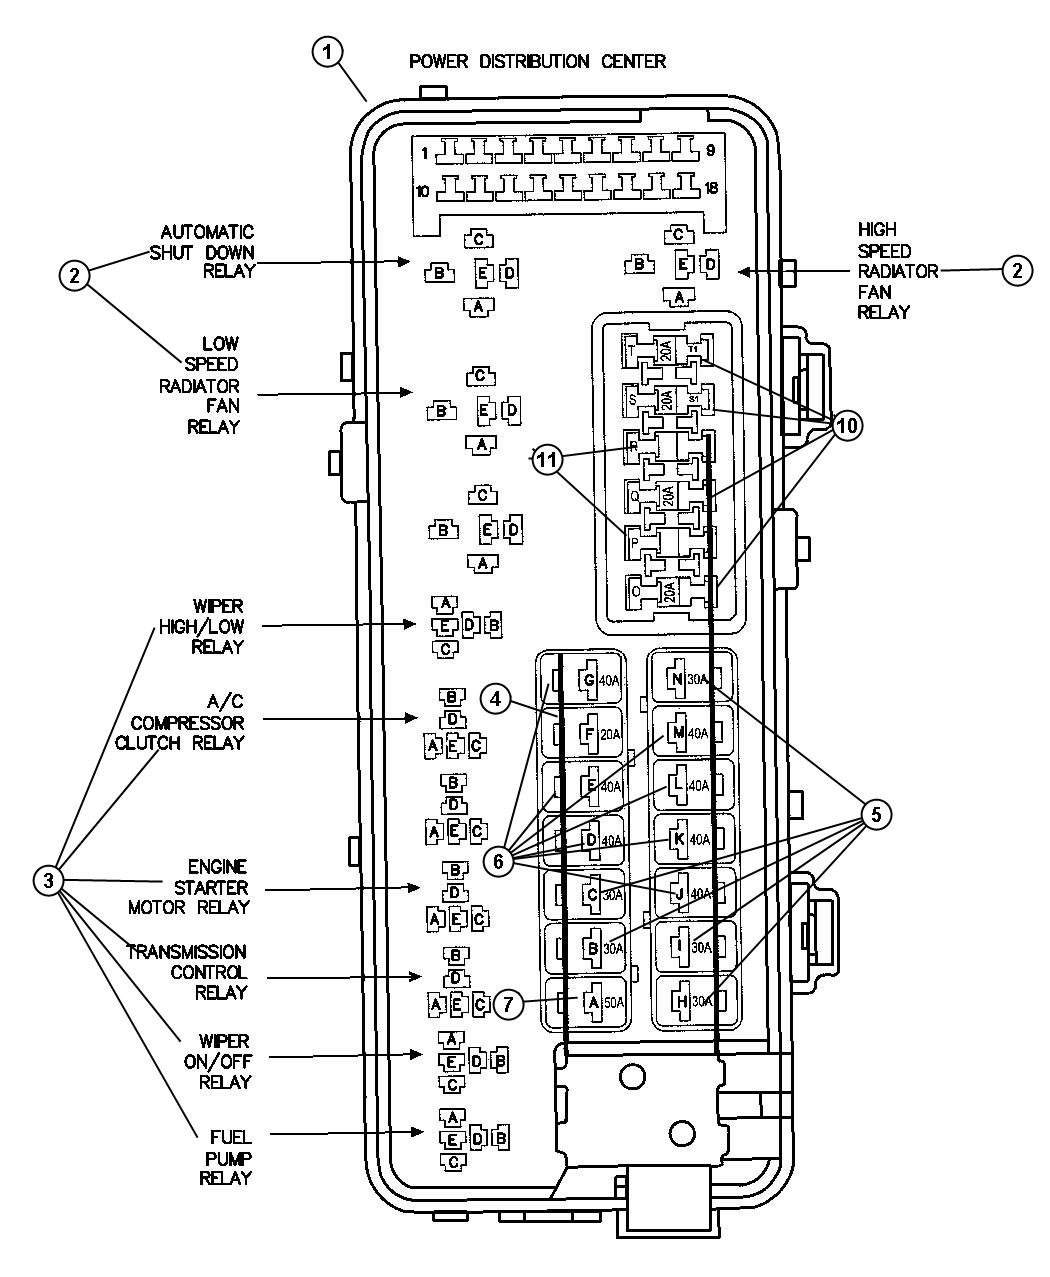 95 Chrysler Concorde Fuse Diagram General Wiring Diagram Cup Thumb Cup Thumb Justrollingwith It